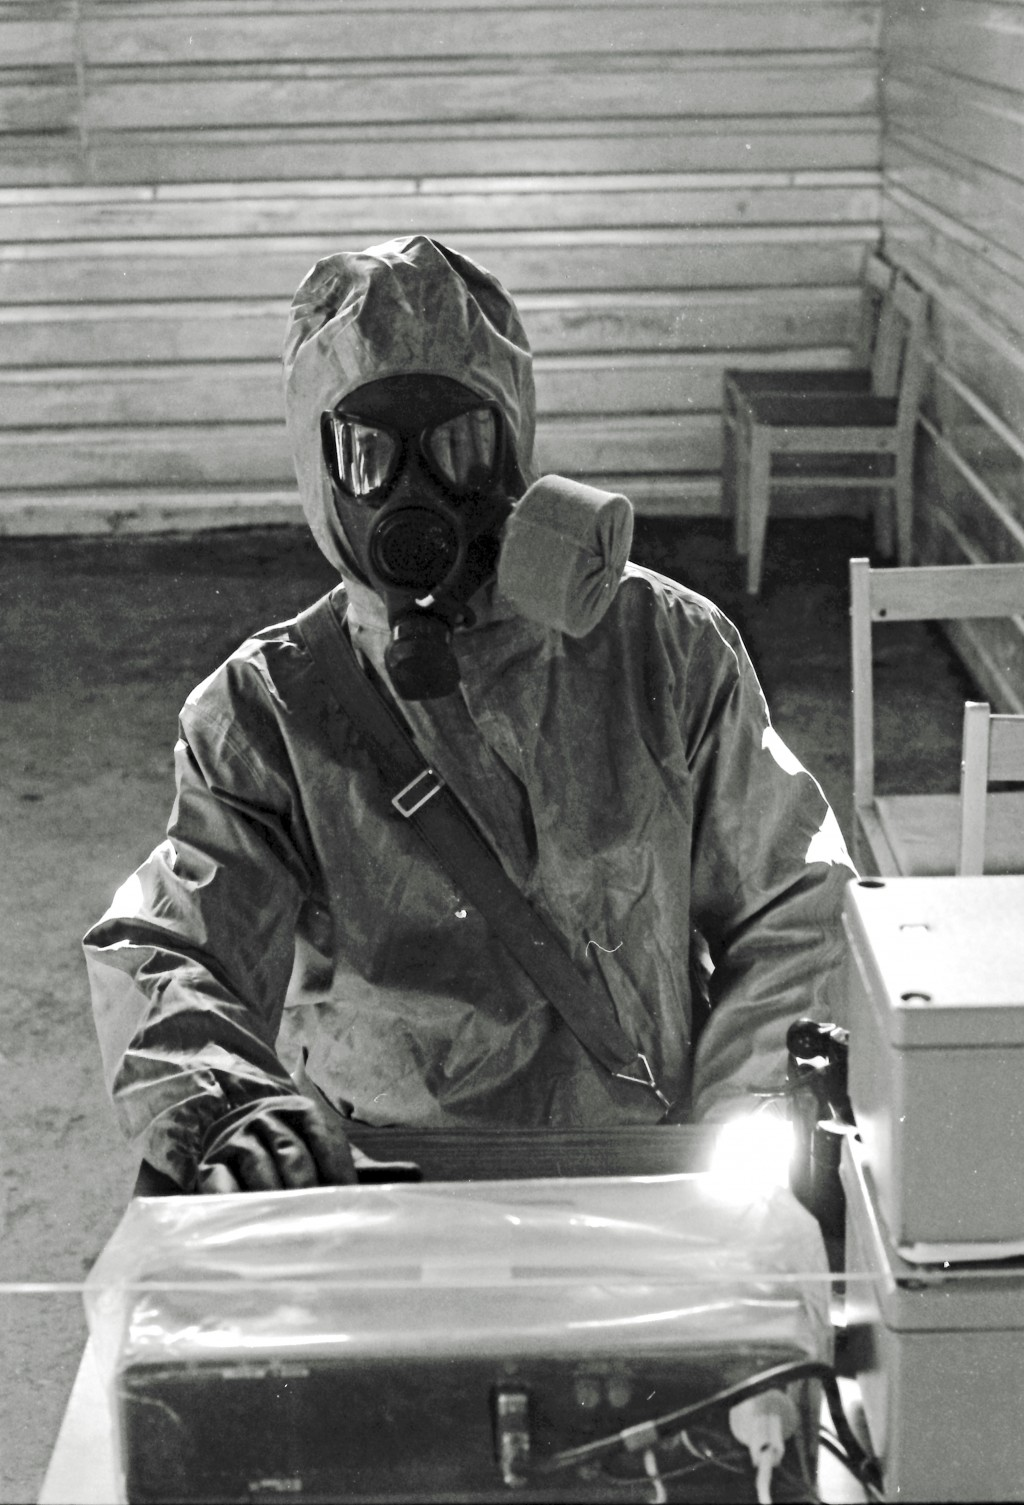 In this photo taken on on Oct. 4, 1987, A Soviet army serviceman in protective suit handles toxic substances during a visit by Western diplomats and j...